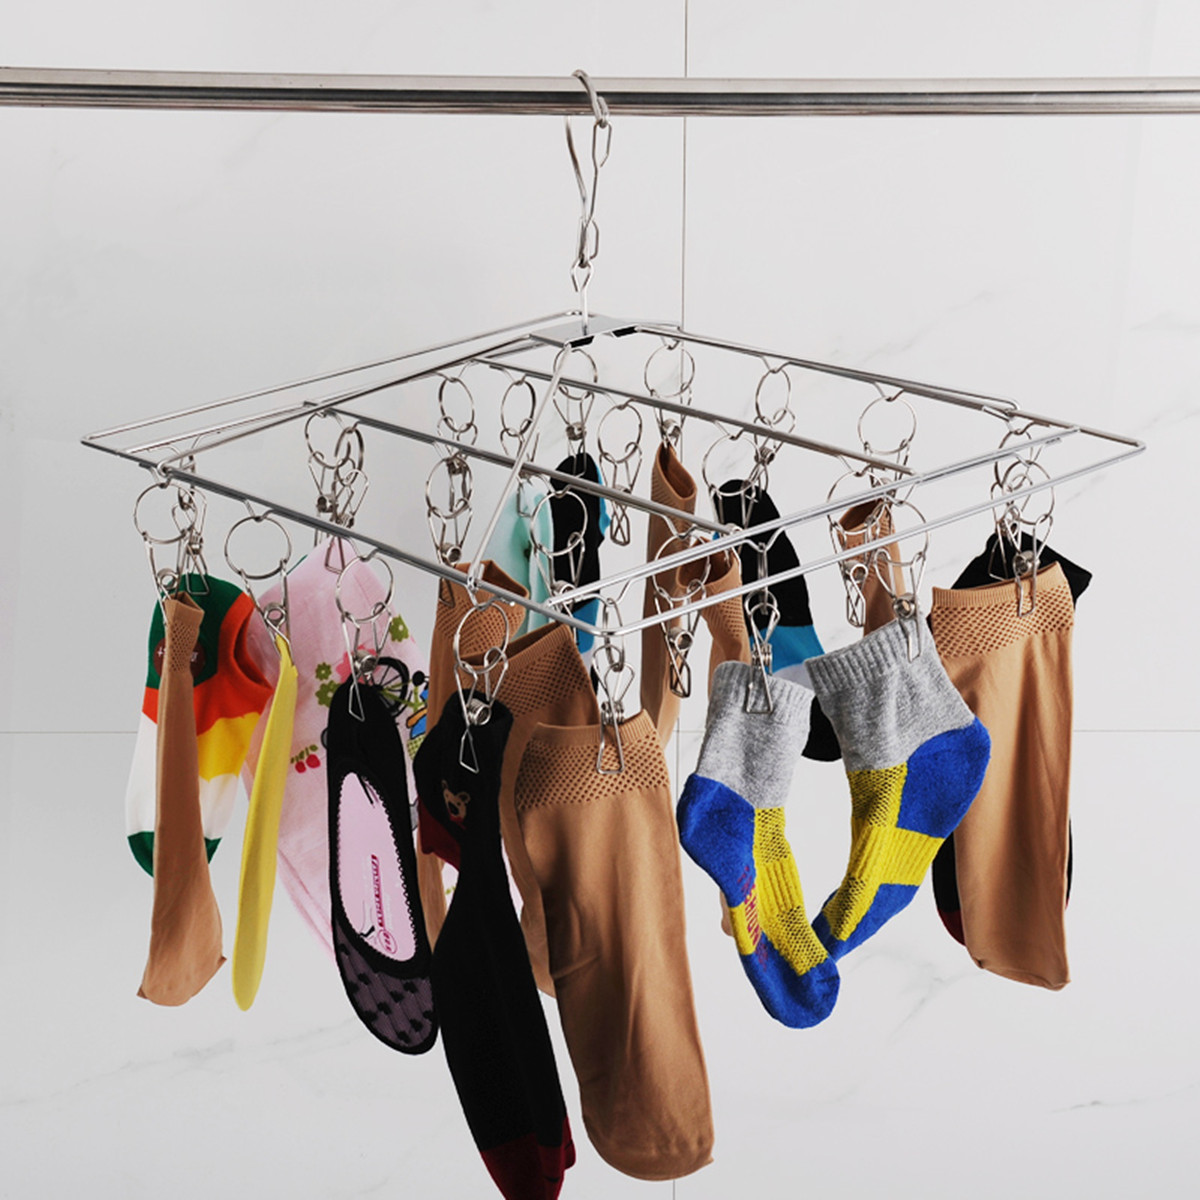 Clothes Hanger Laundry Hanging Dryer 26 Clips Stainless Steel Sock